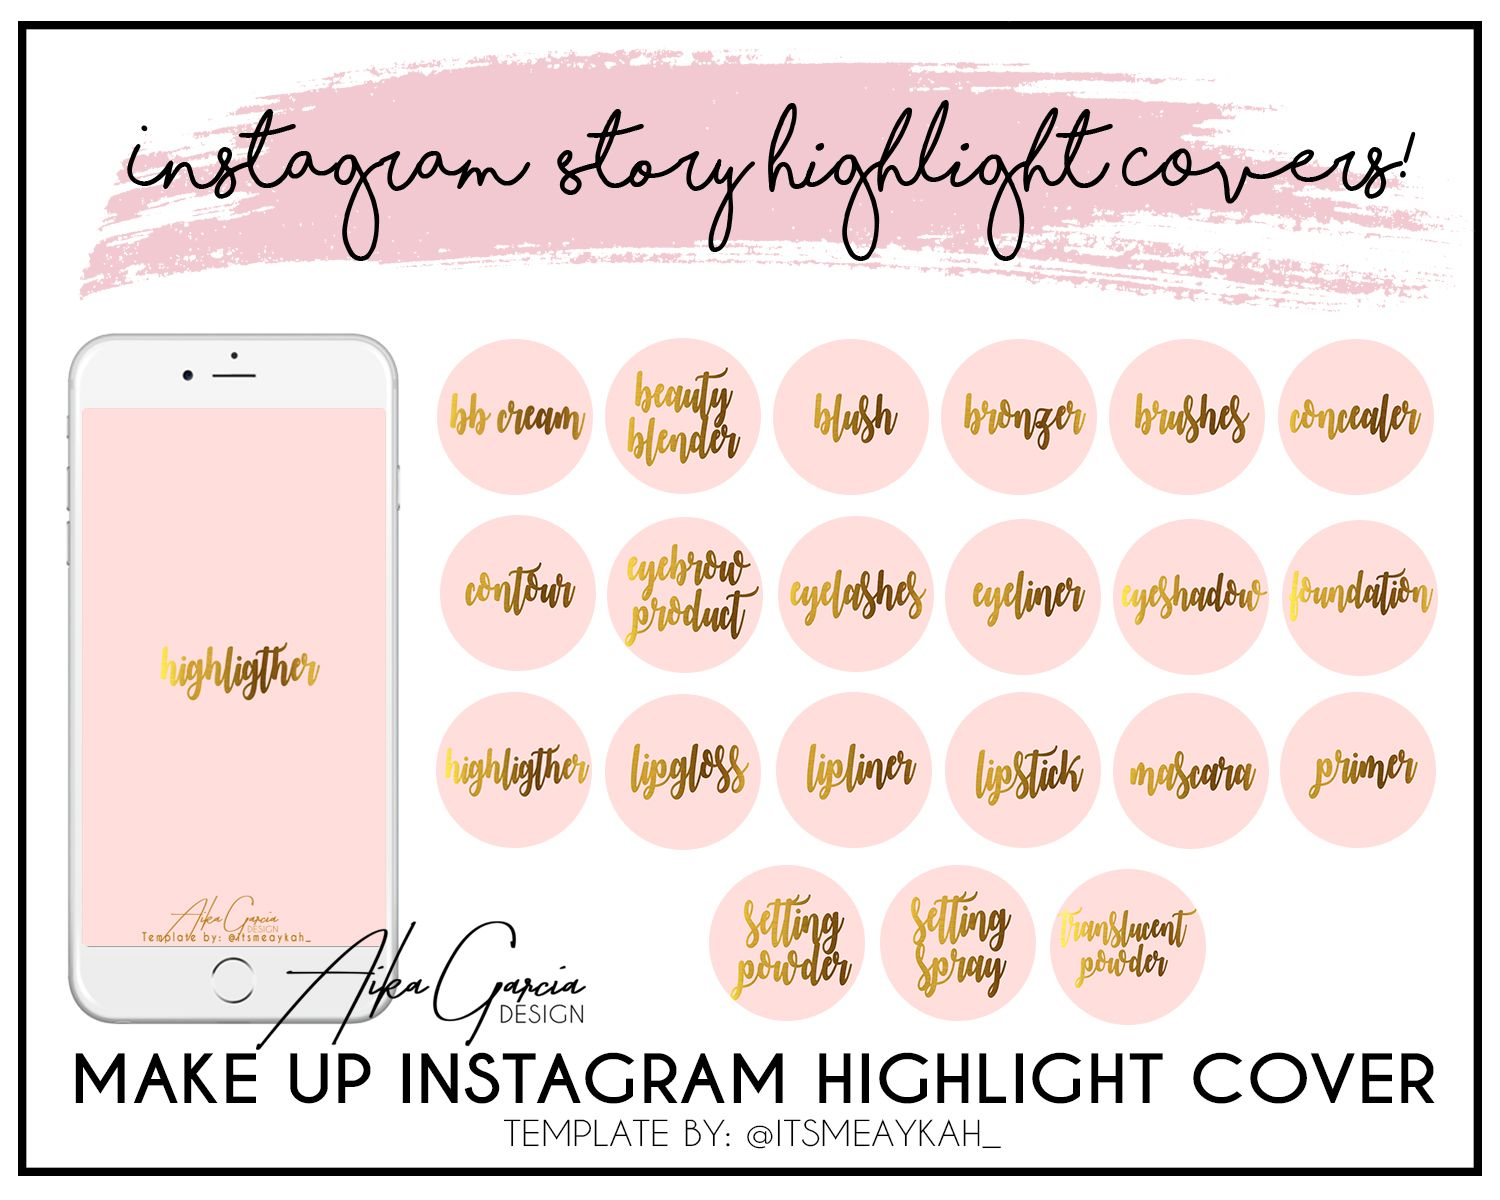 21 Make up icon instagram highlights cover Price 10 If